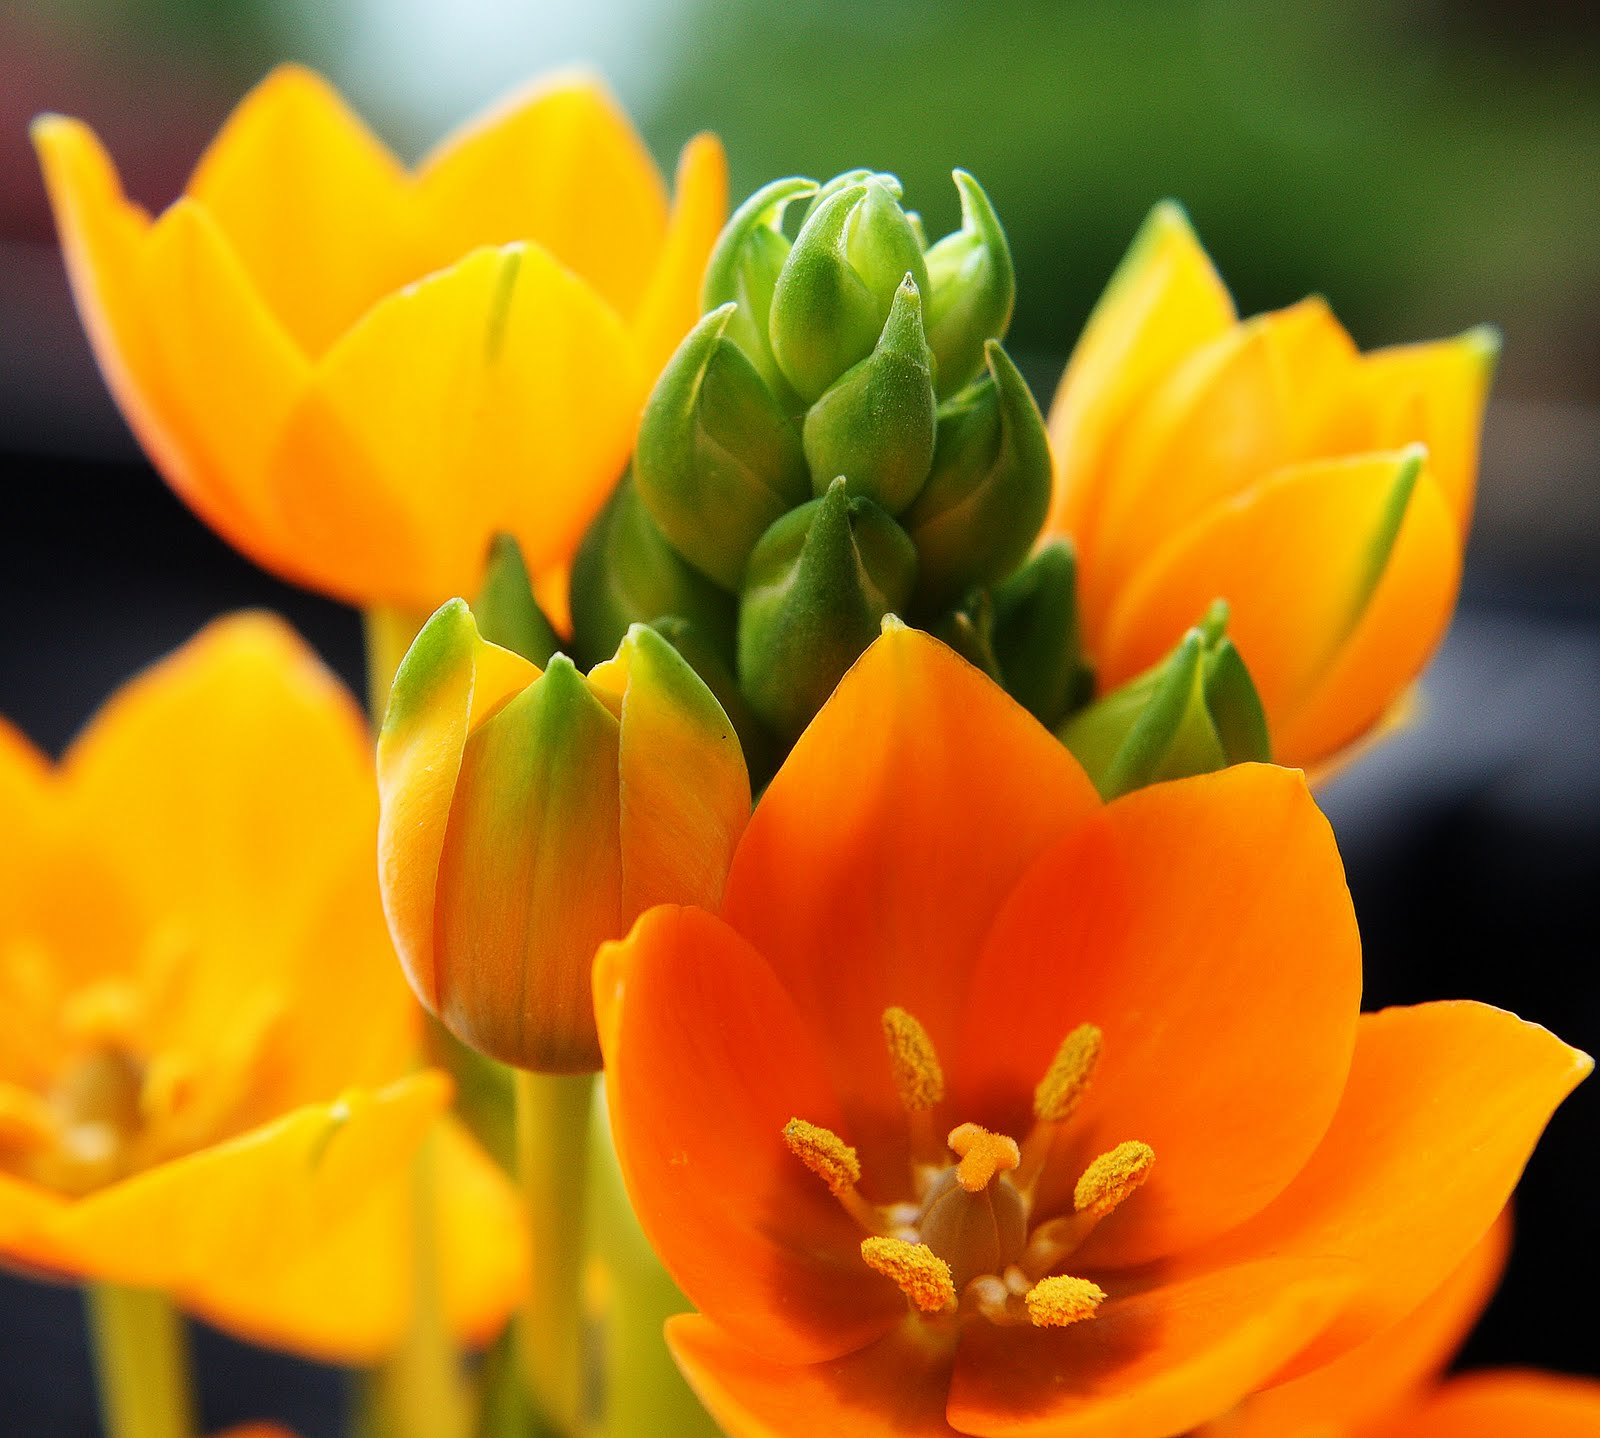 CARLETTA S CAPTURES An Orange Star Plant for Mother s Day